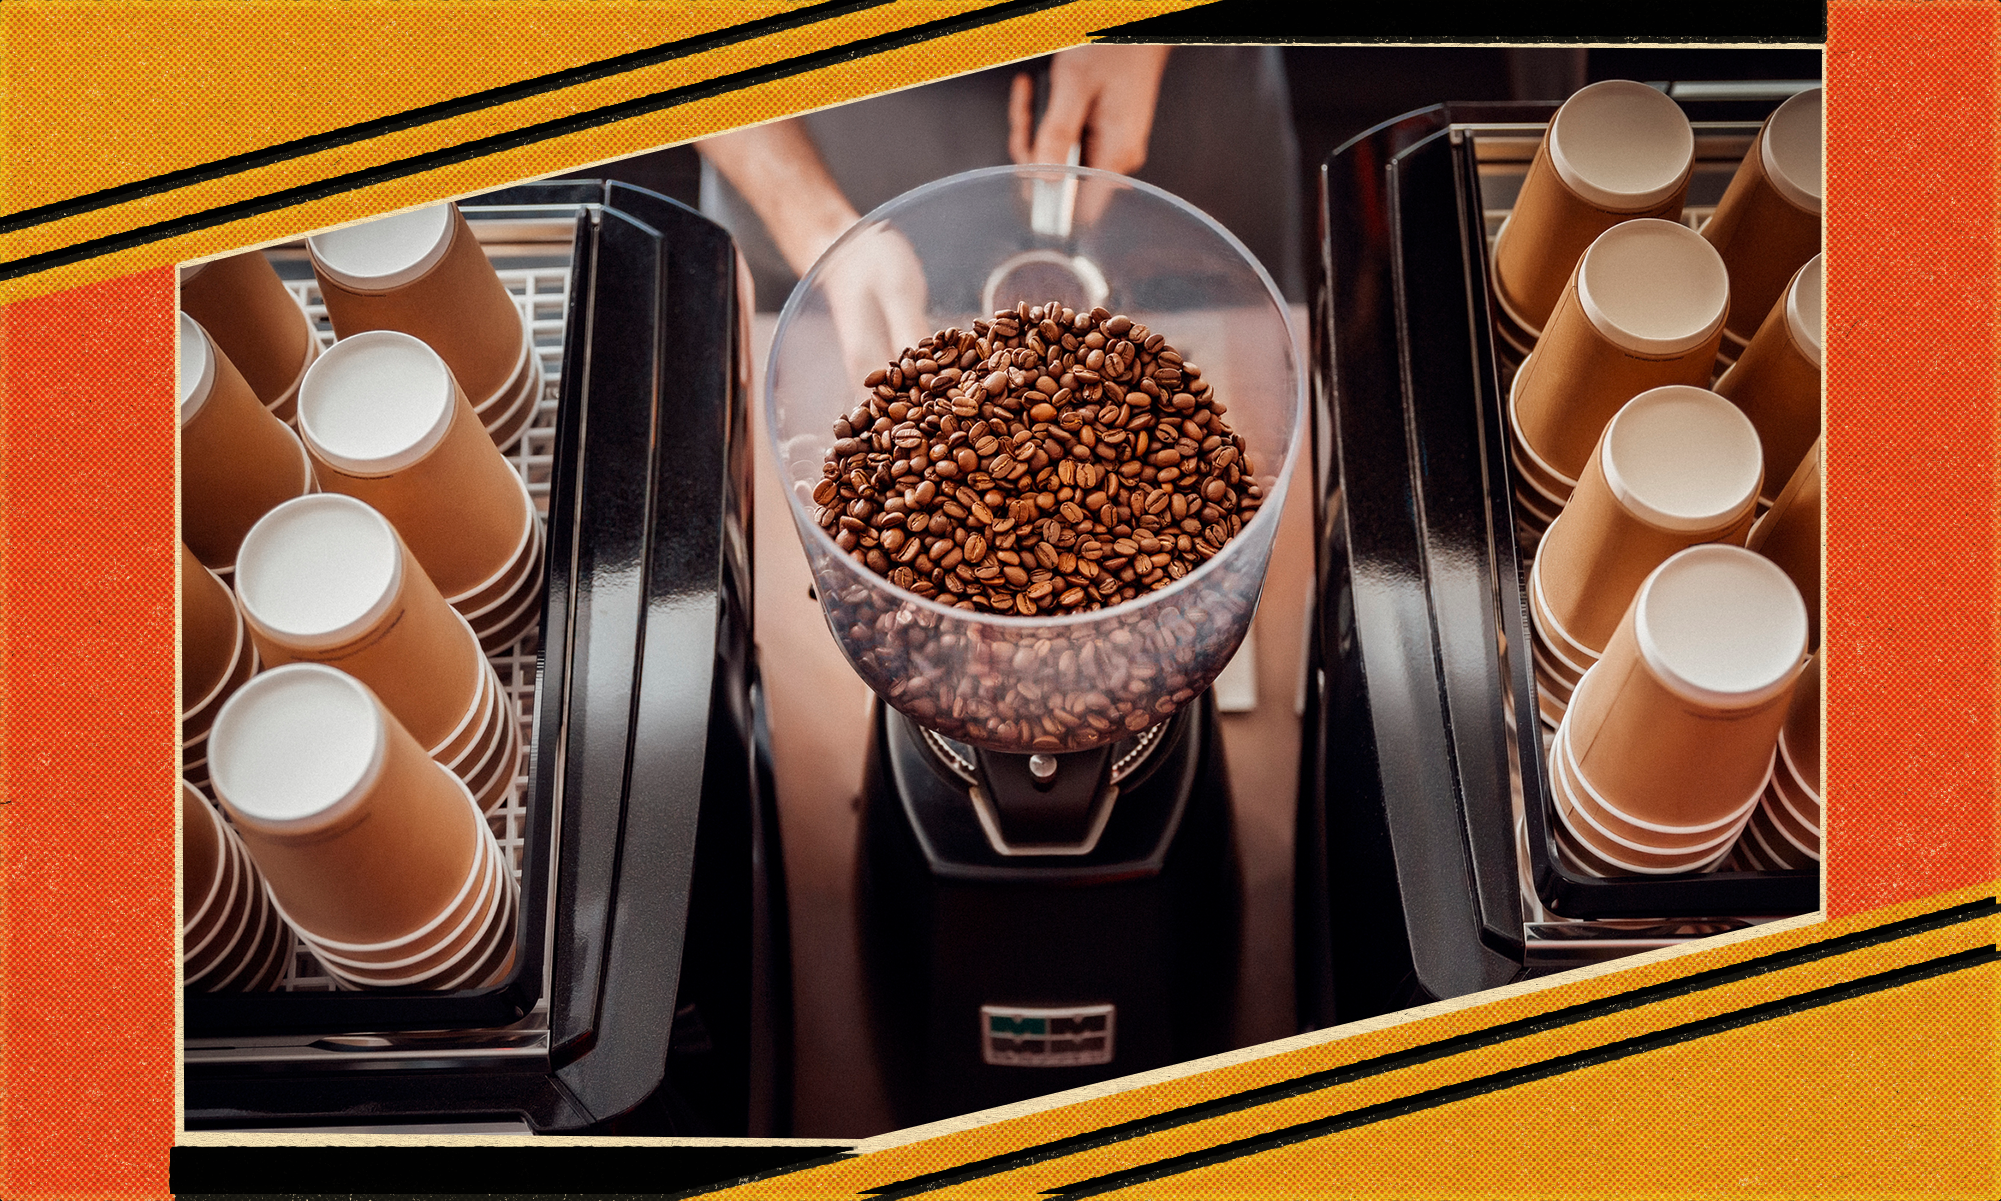 Coffee beans sit in a coffee grinder next to paper cups.